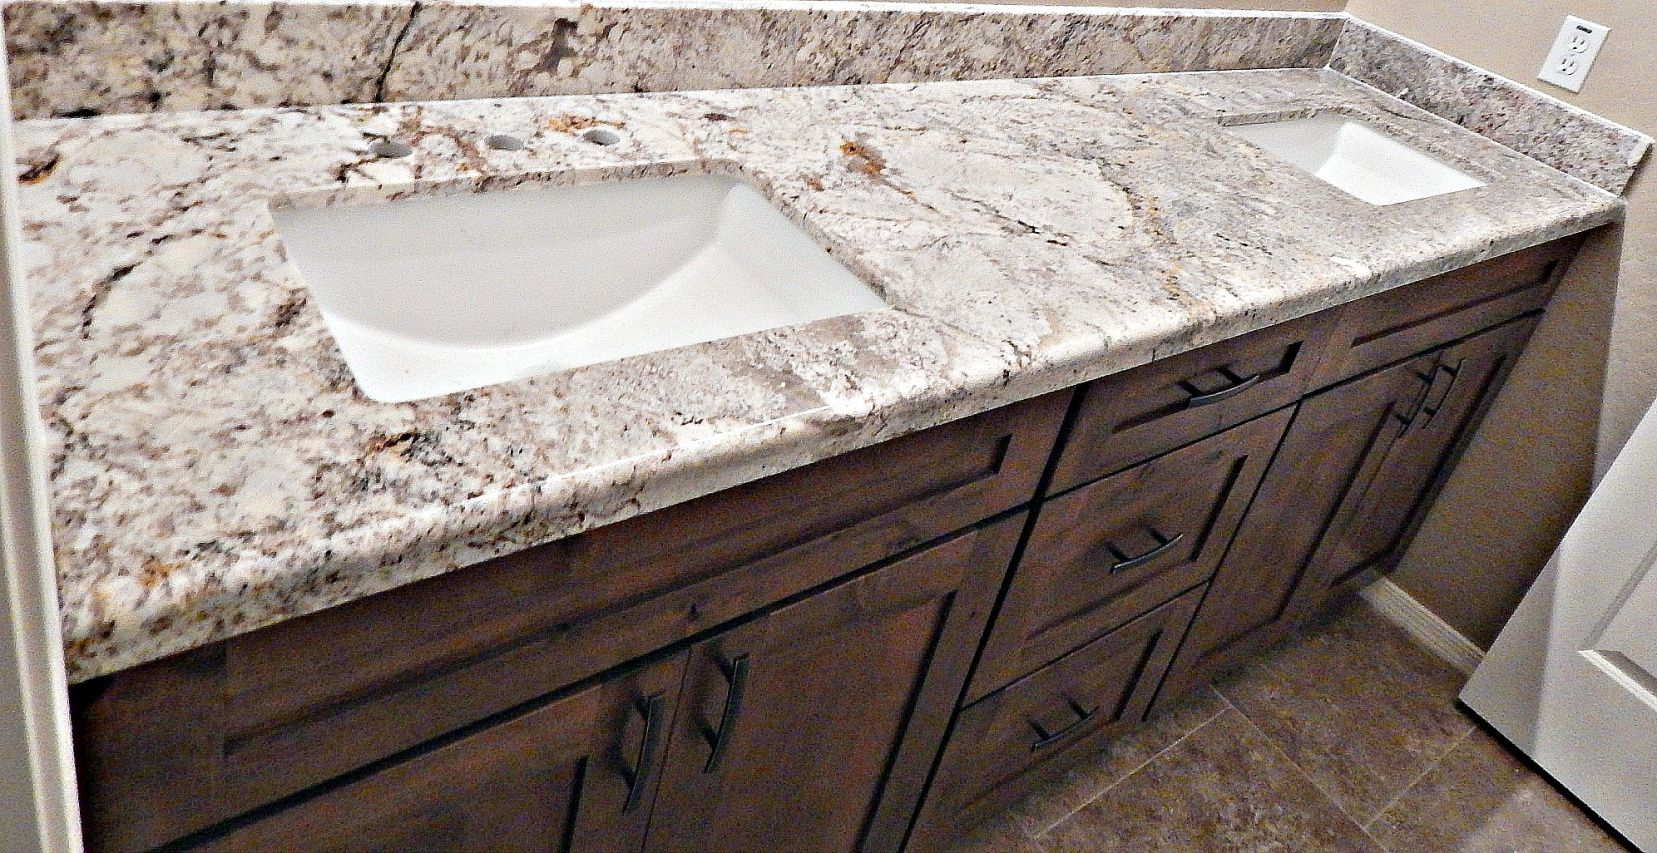 2018 Granite Countertops In Phoenix   Remodeling Ideas For Kitchens Check  More At Http:/